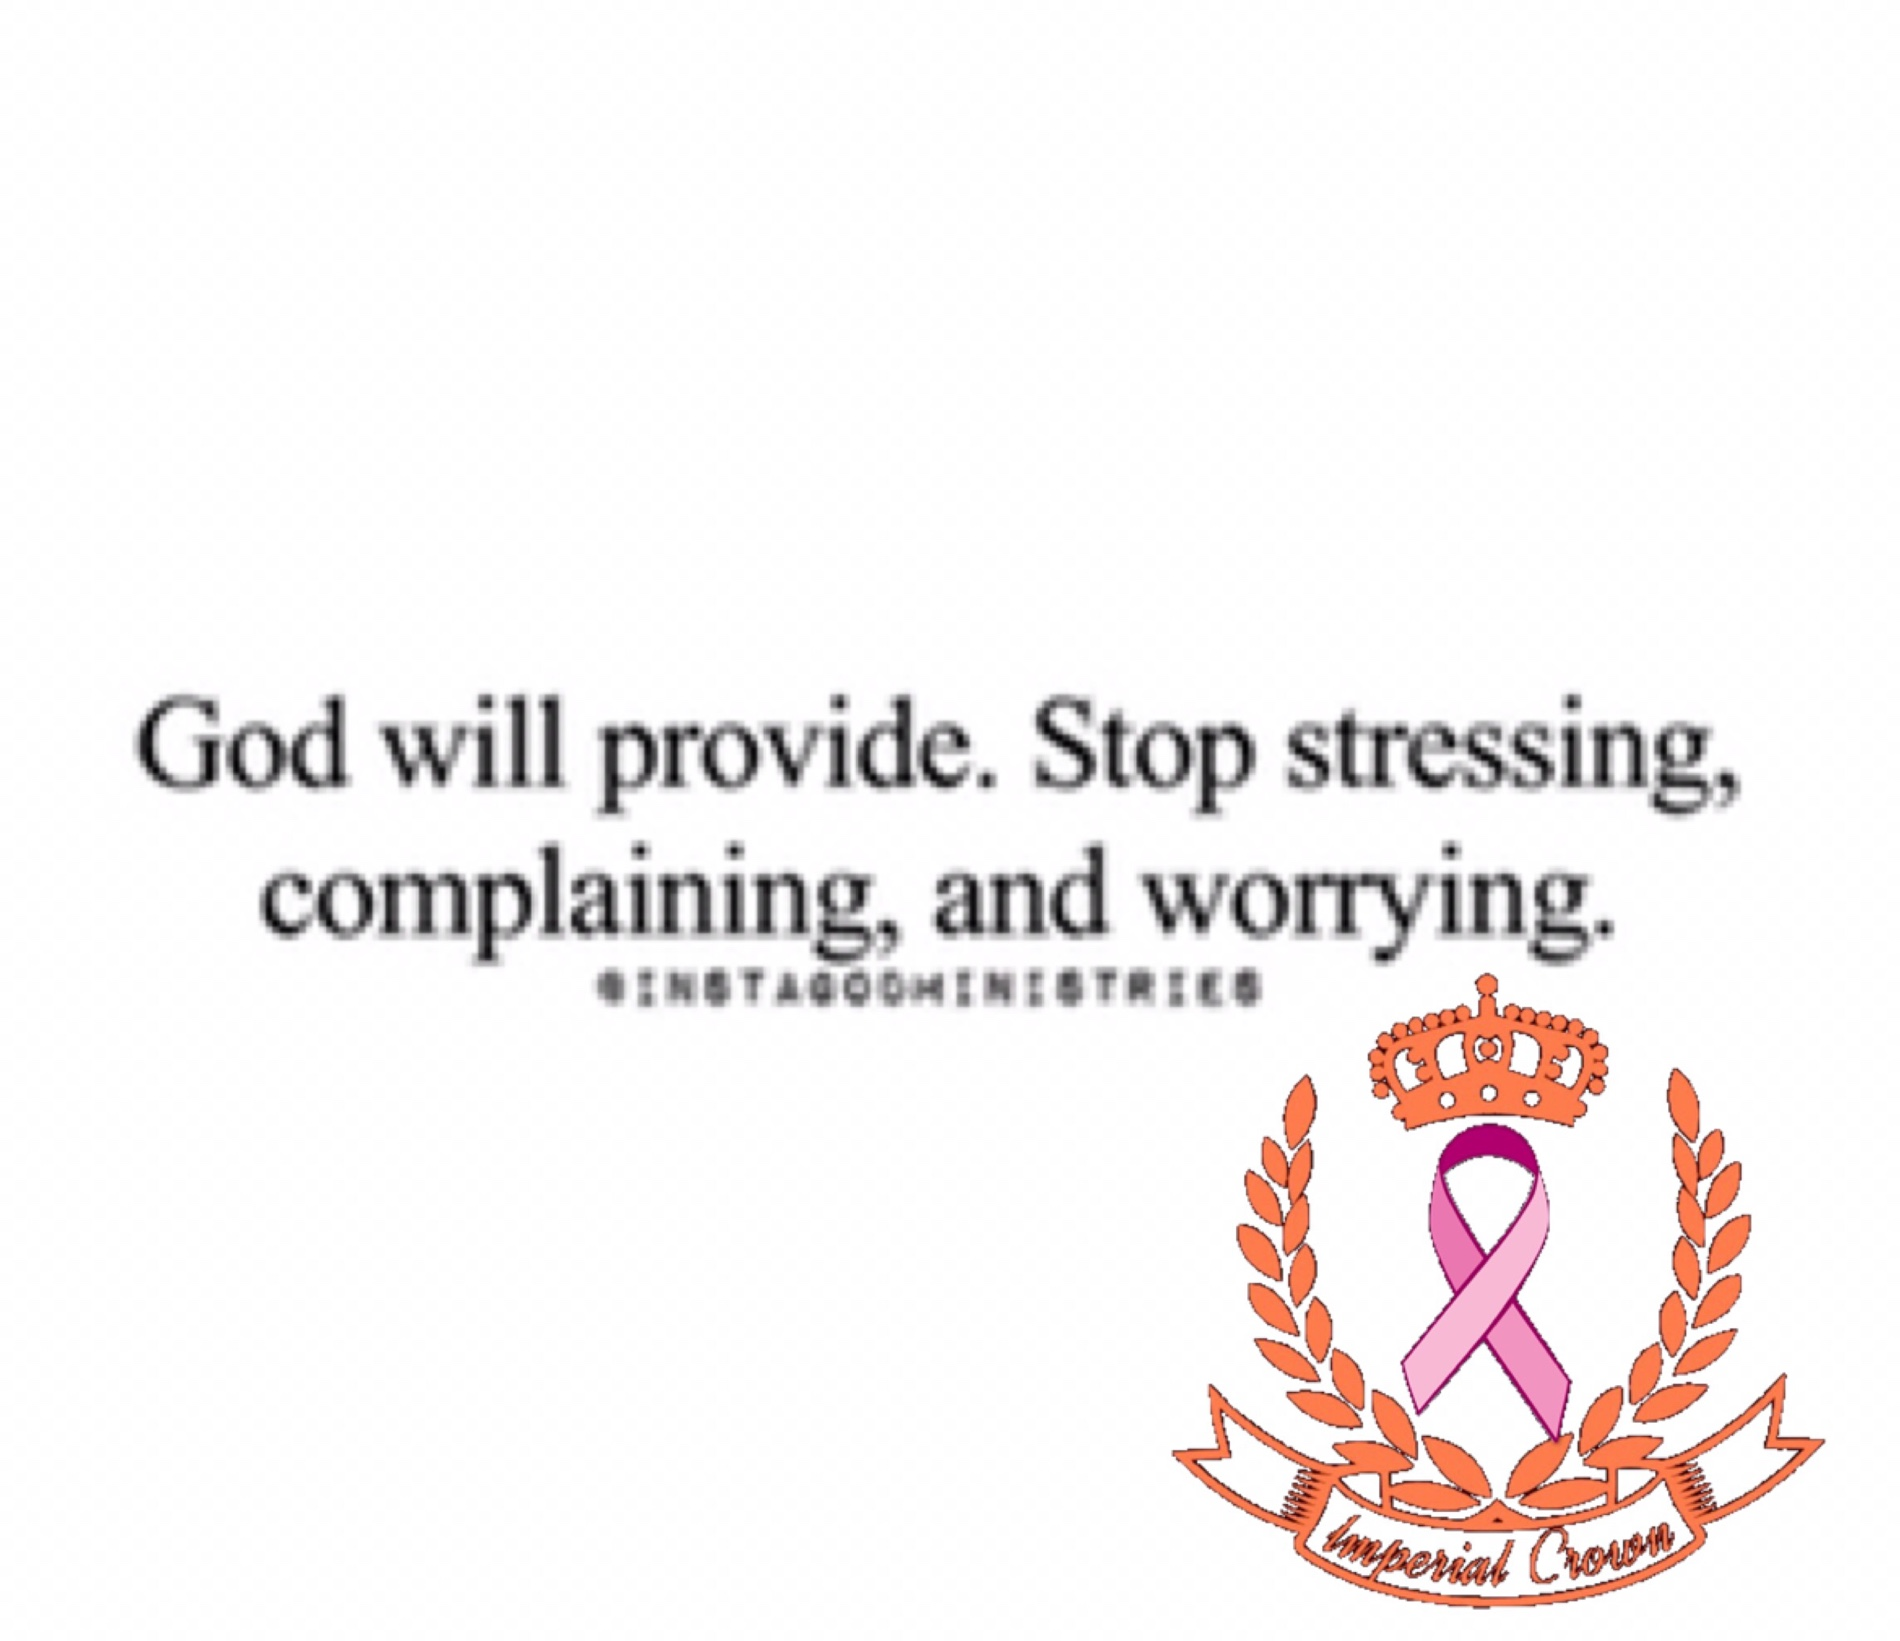 God will provide stop stressing complaining and worrying